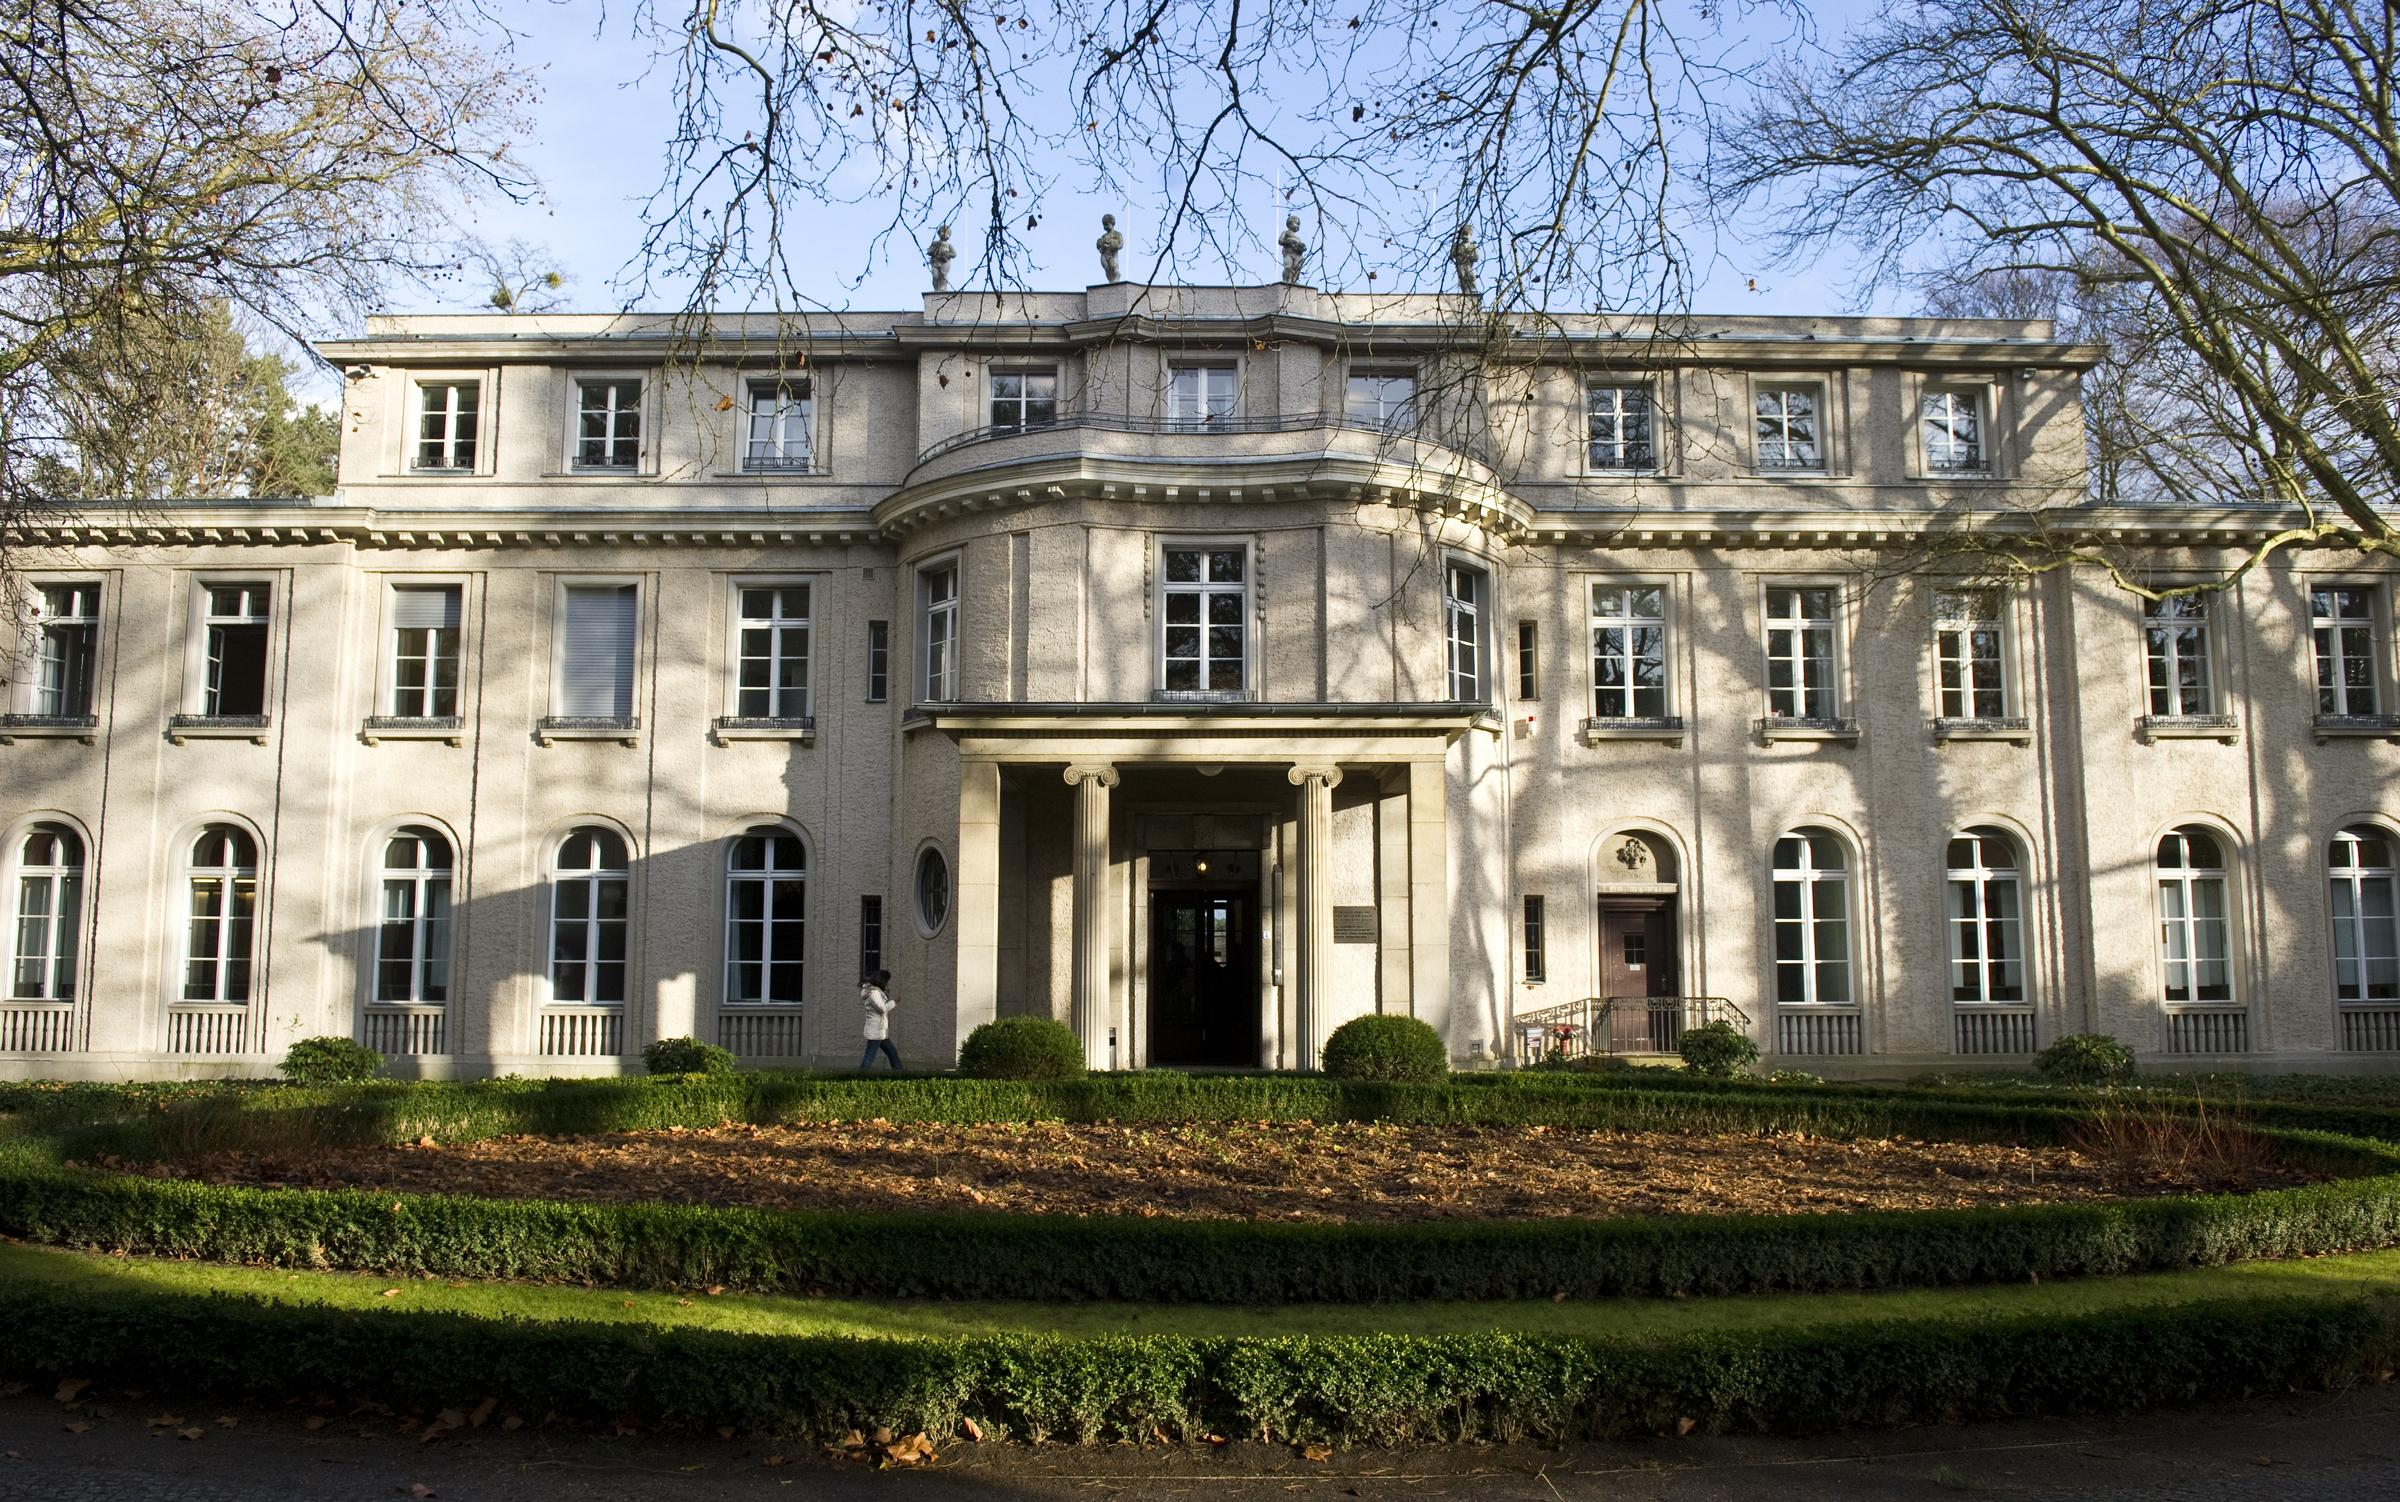 The wannsee house in berlin where the wannsee conference took place in 1942